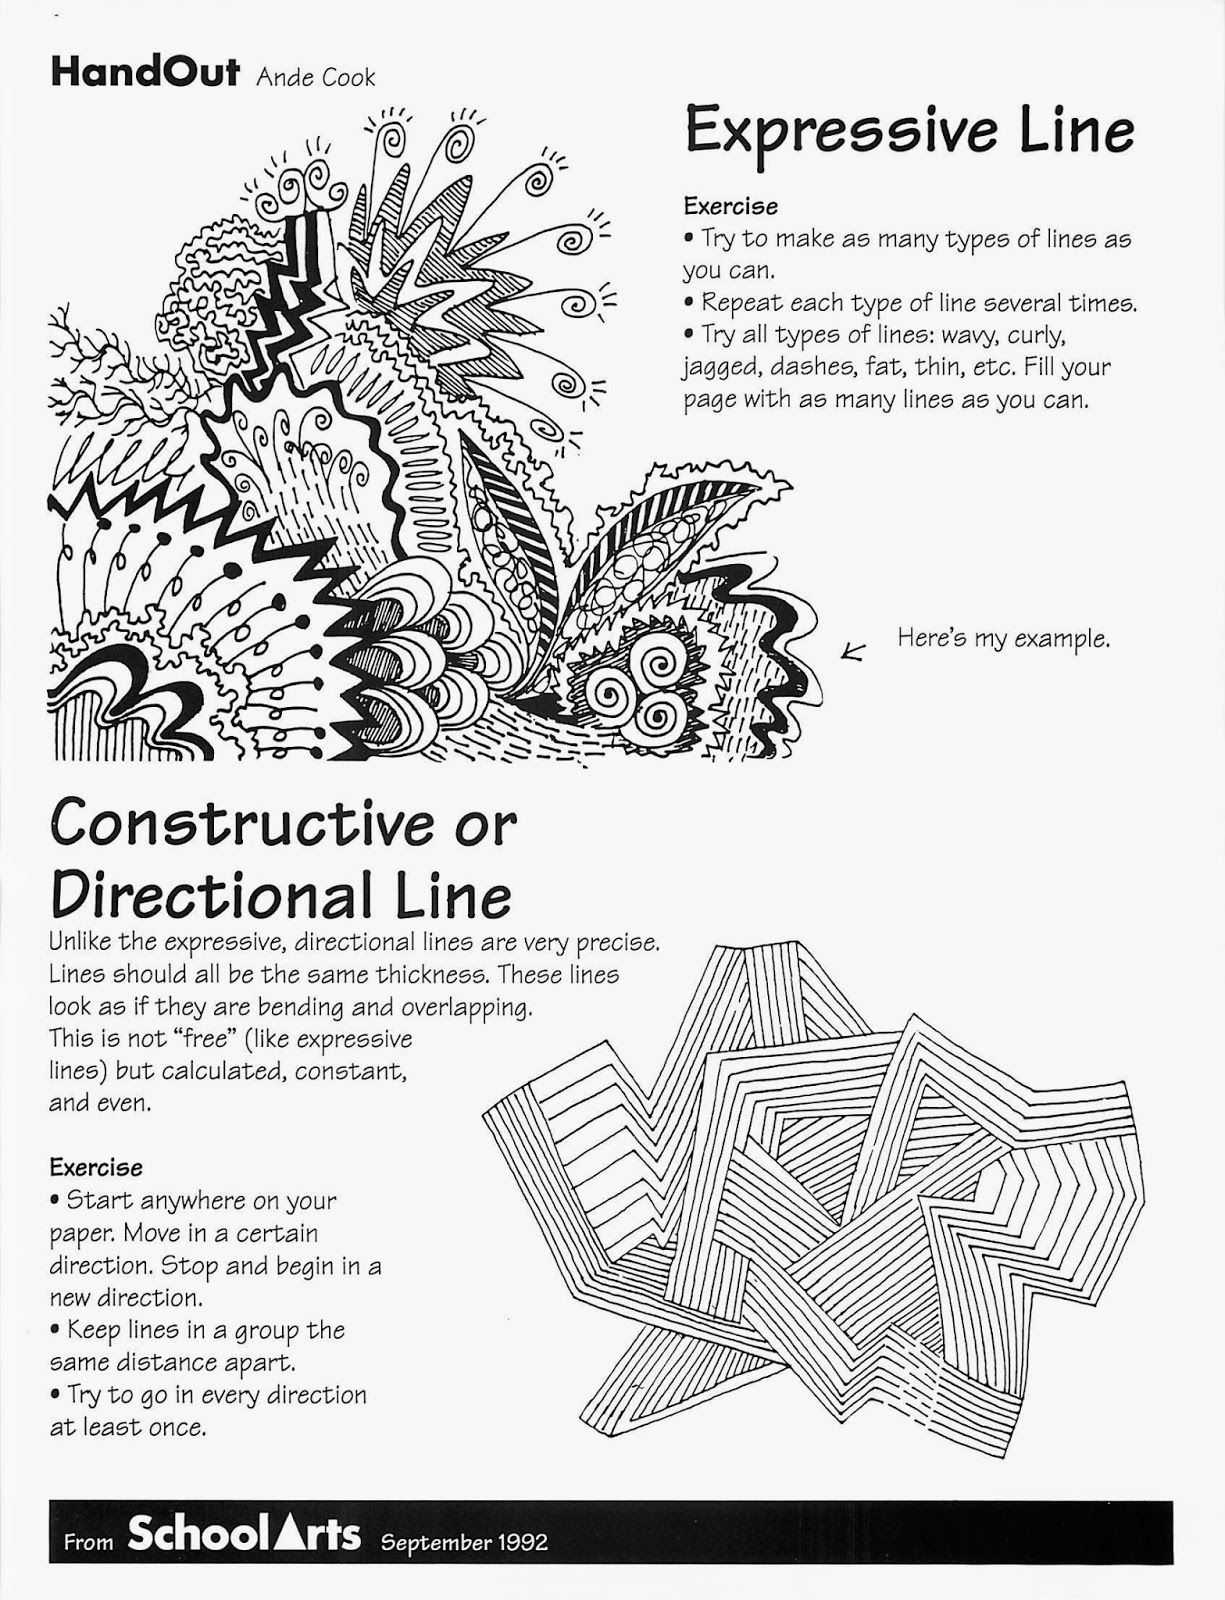 Line Art Element Definition : Free ande cook s expressive and directional line handout